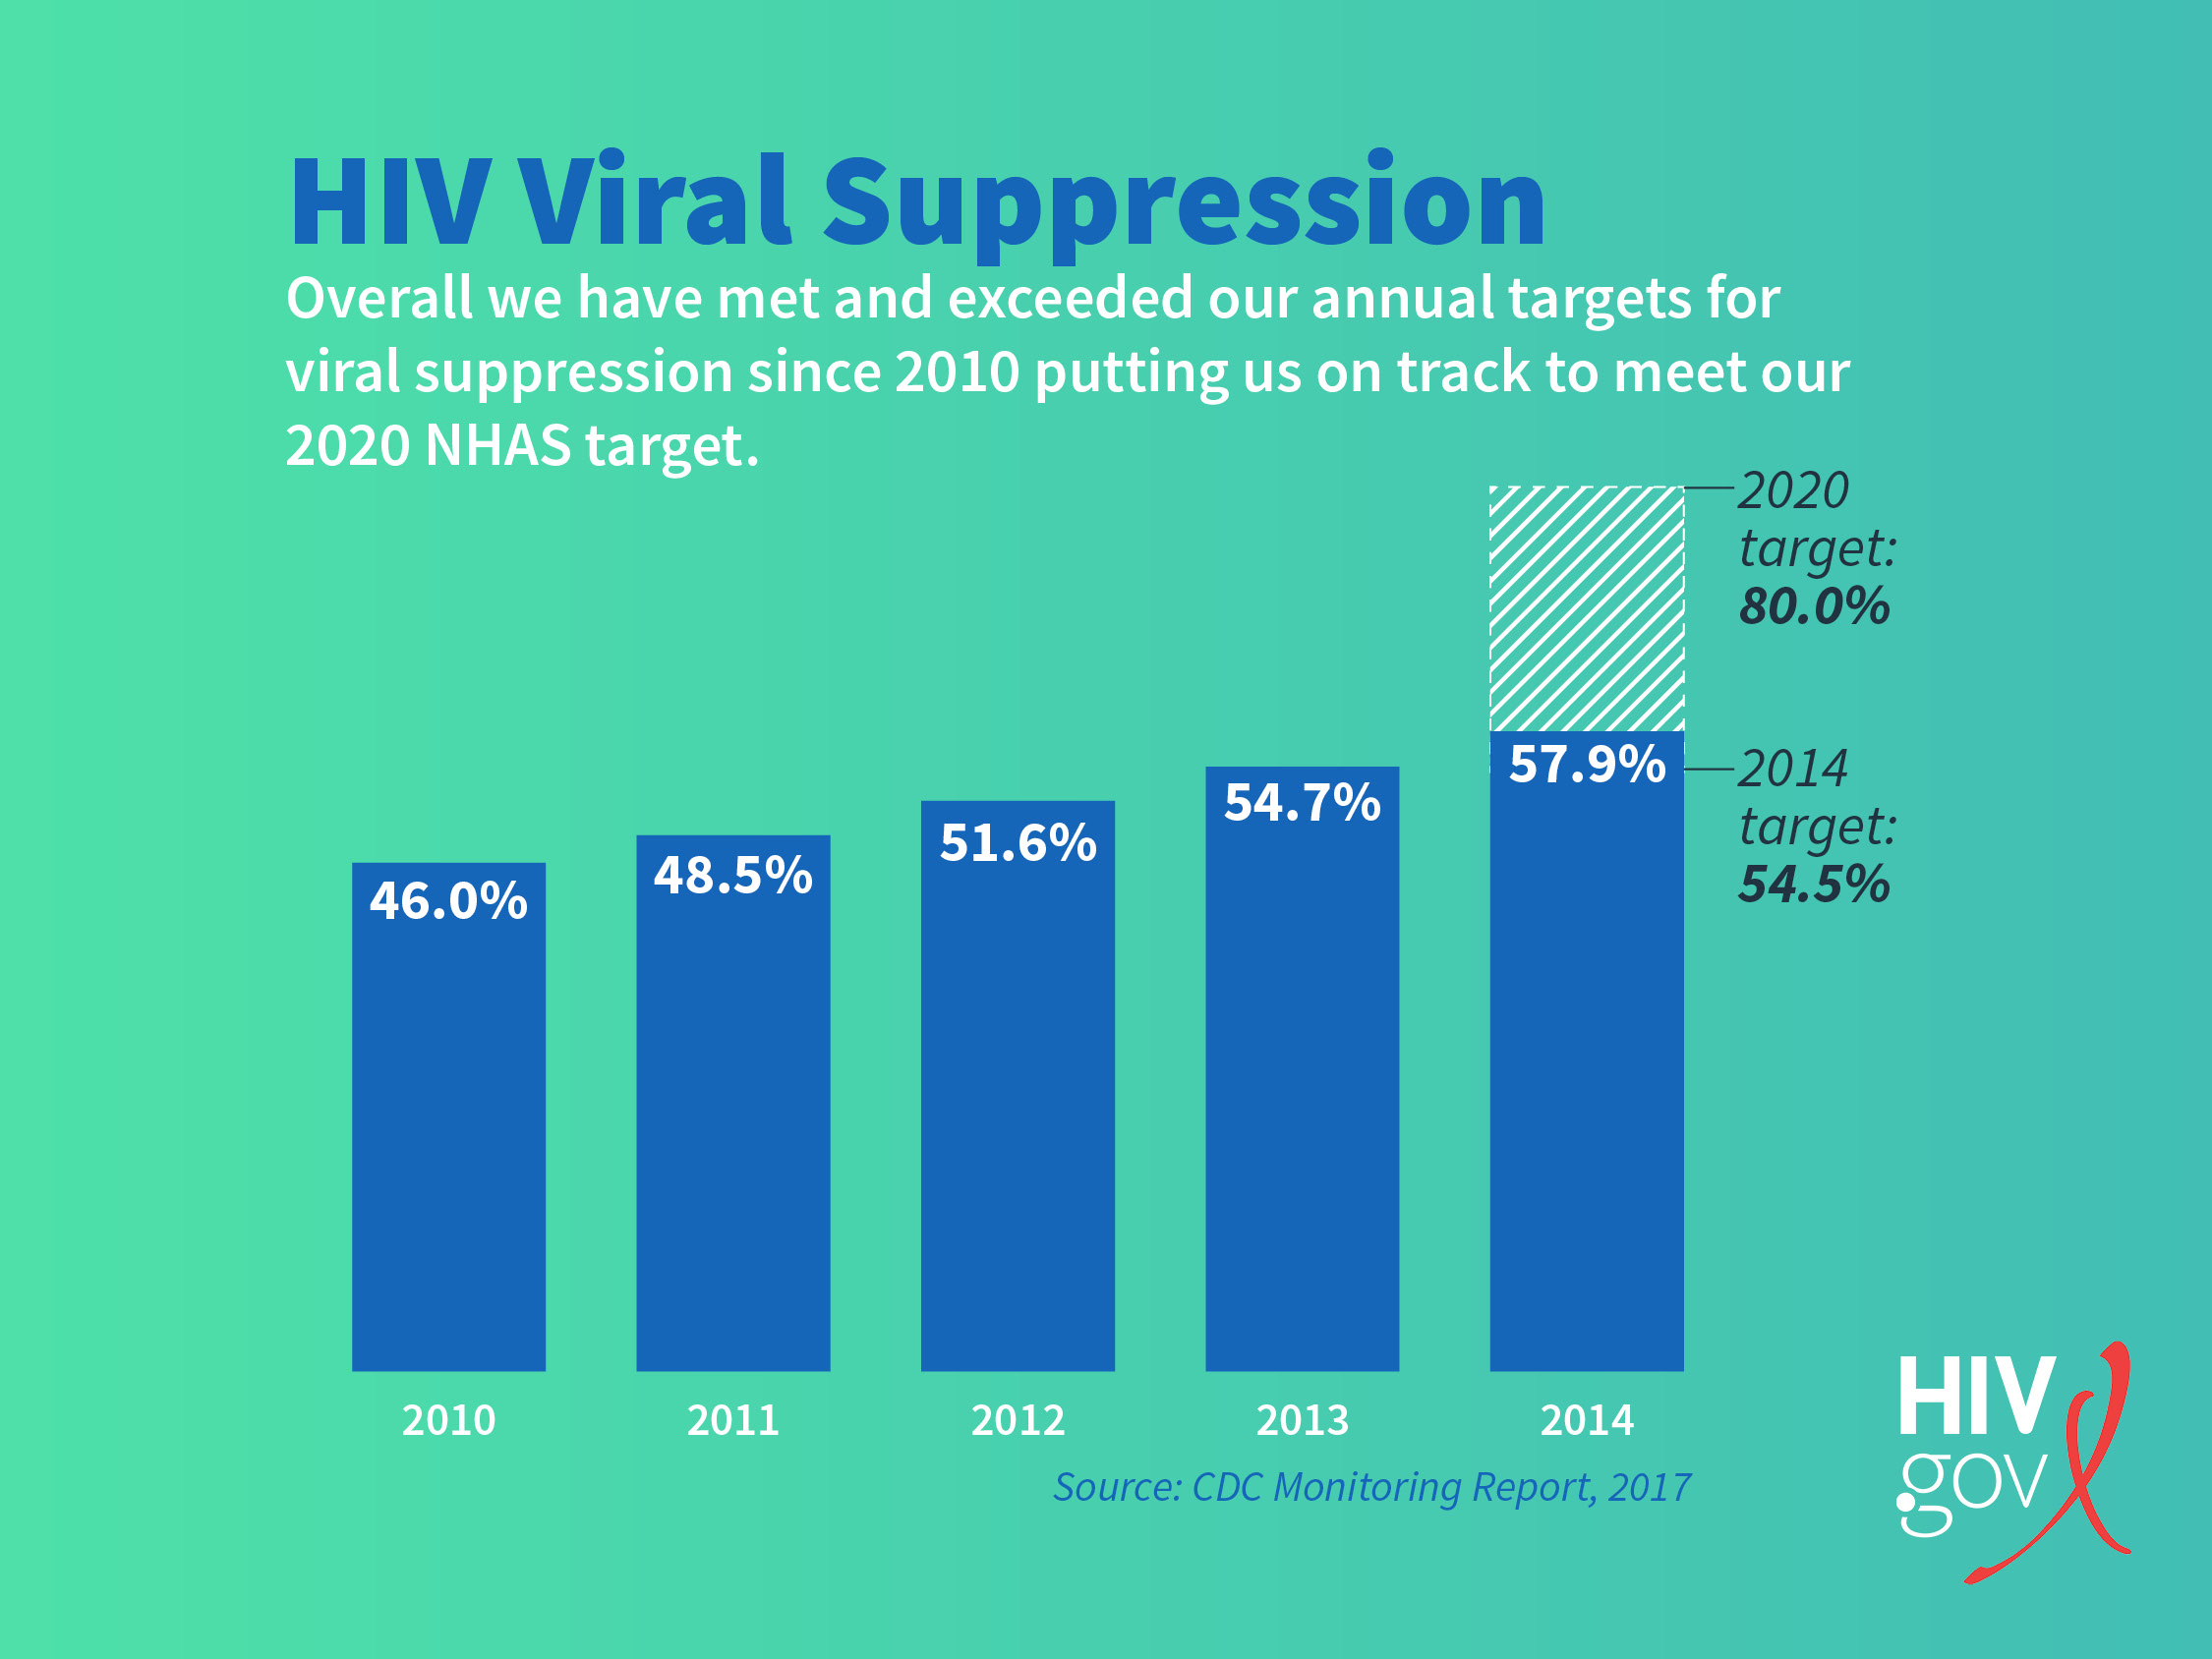 bar graph on viral suppression statistics over the years